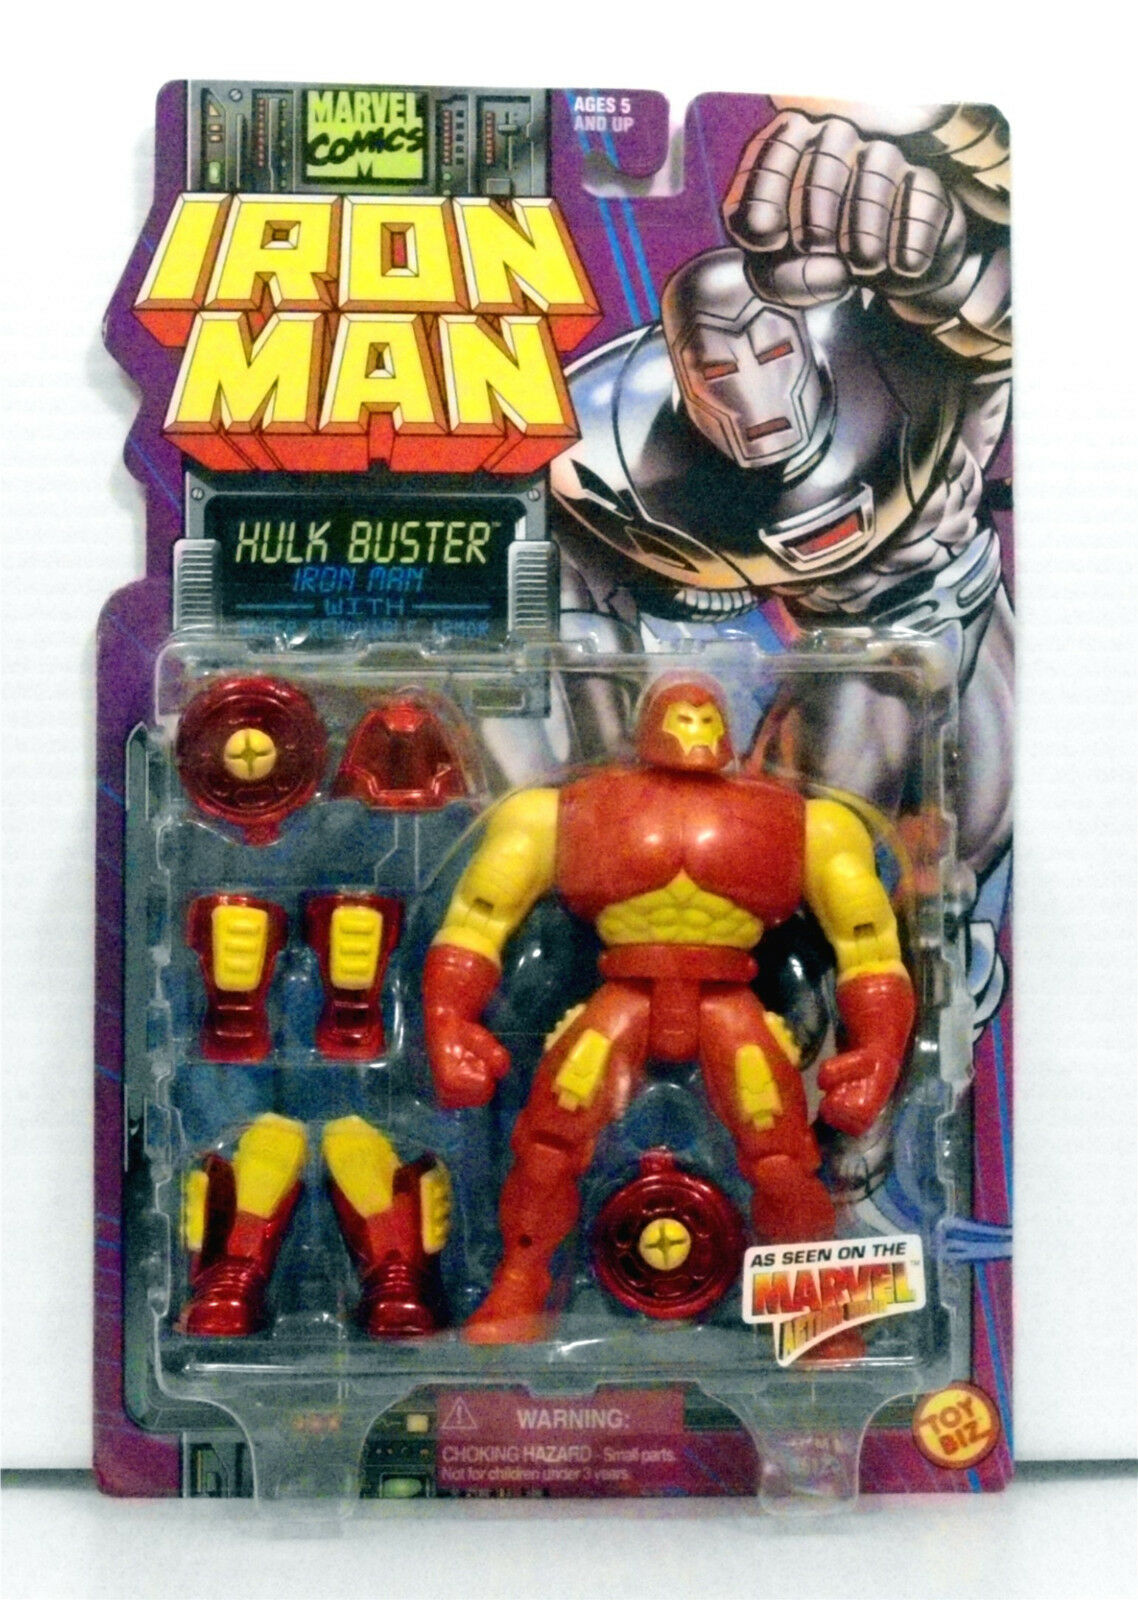 Iron Man Hulk Buster Power Removable Armor Toy Biz 1995 Marvel Action Hour